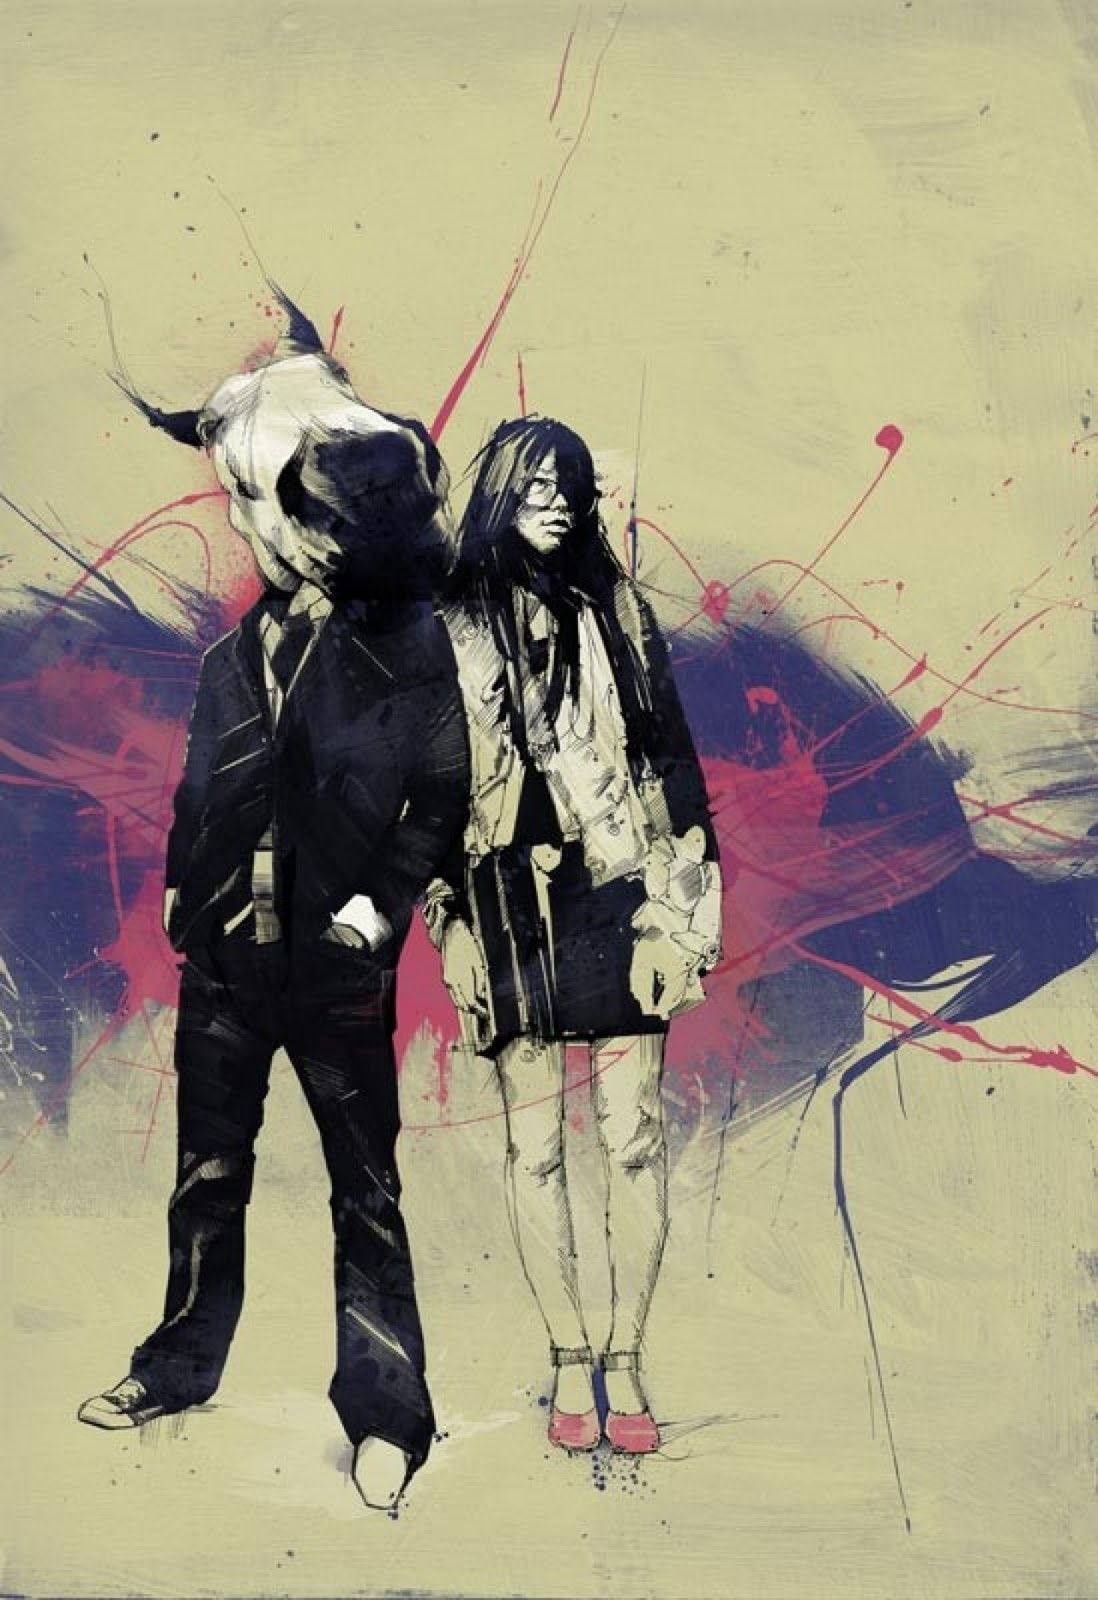 Unususal Creation Of Emotional Illustrations By Russ Mills